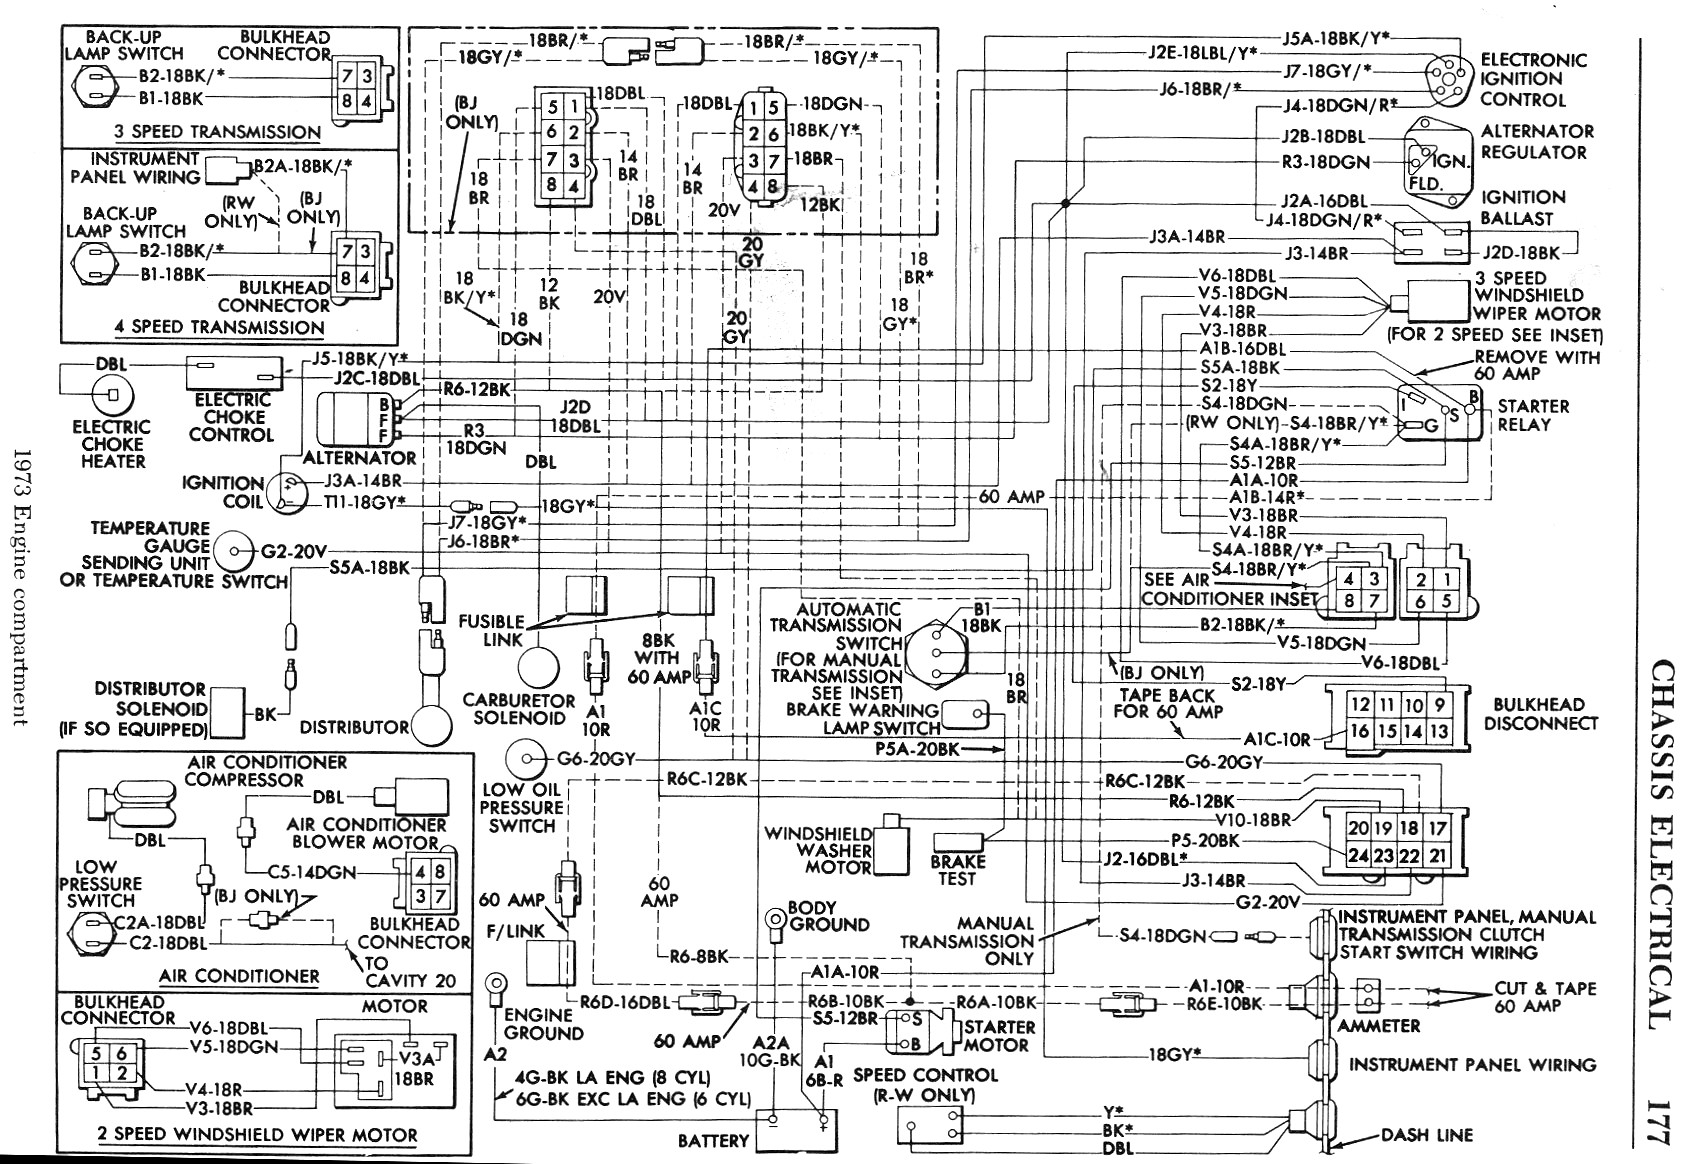 5098823 73B BodyEngineCompartmentWiringDiagram mopar wiring diagram powerflex 755 wiring diagrams \u2022 free wiring 1967 Plymouth Satellite Wiring Diagram at gsmportal.co